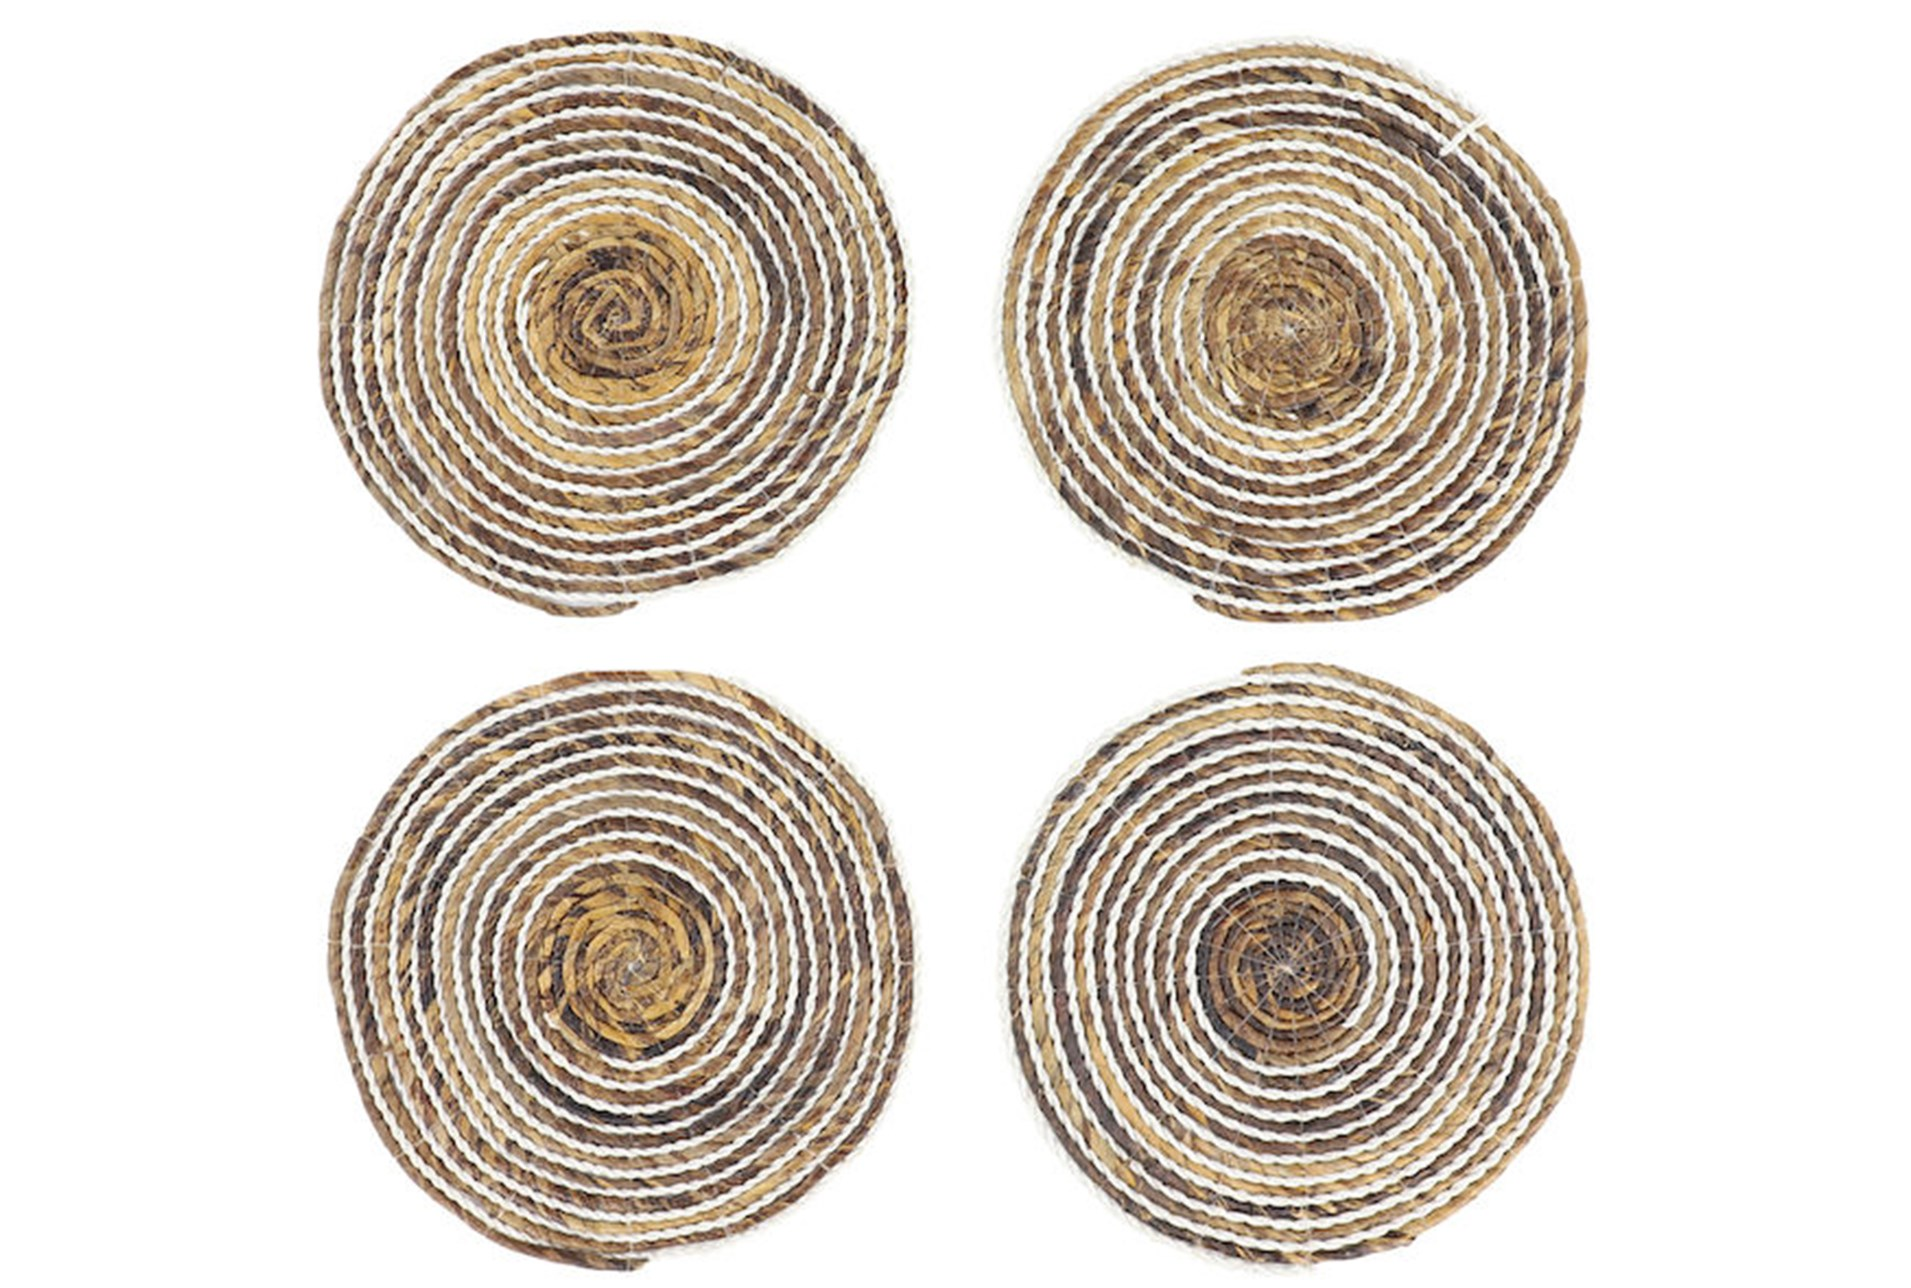 Set Of 4 White Wash Round Placemat Qty 1 Has Been Successfully Added To Your Cart